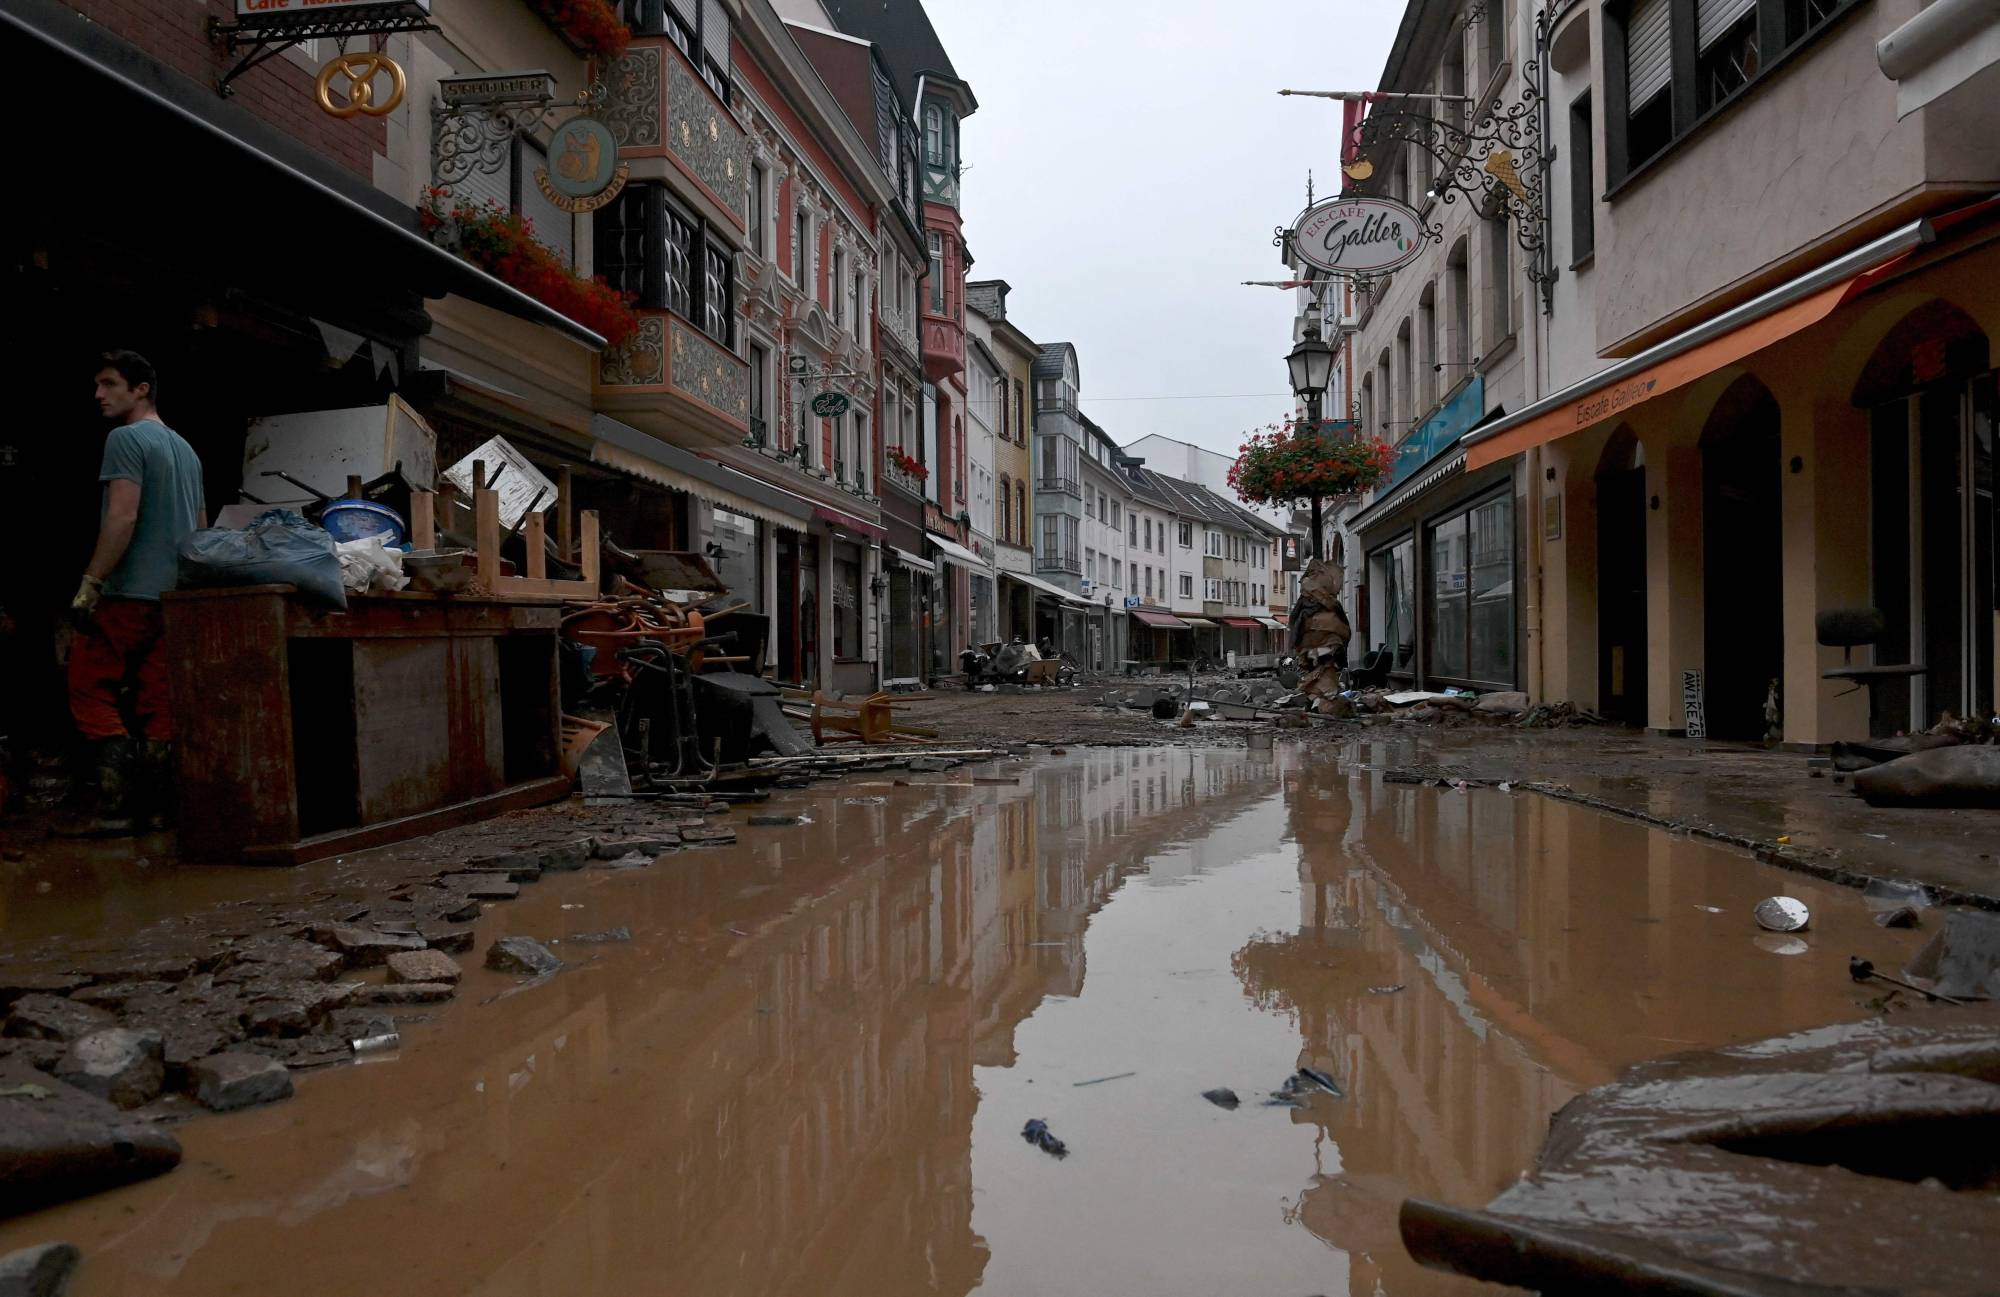 A flooded street in Ahrweiler-Bad Neuenahr, Germany, on Thursday. Voter surveys across Europe — which this week suffered deadly flash floods after record rainfall that some officials linked to global warming — show that climate change is a growing preoccupation among many of its citizens. | AFP-JIJI